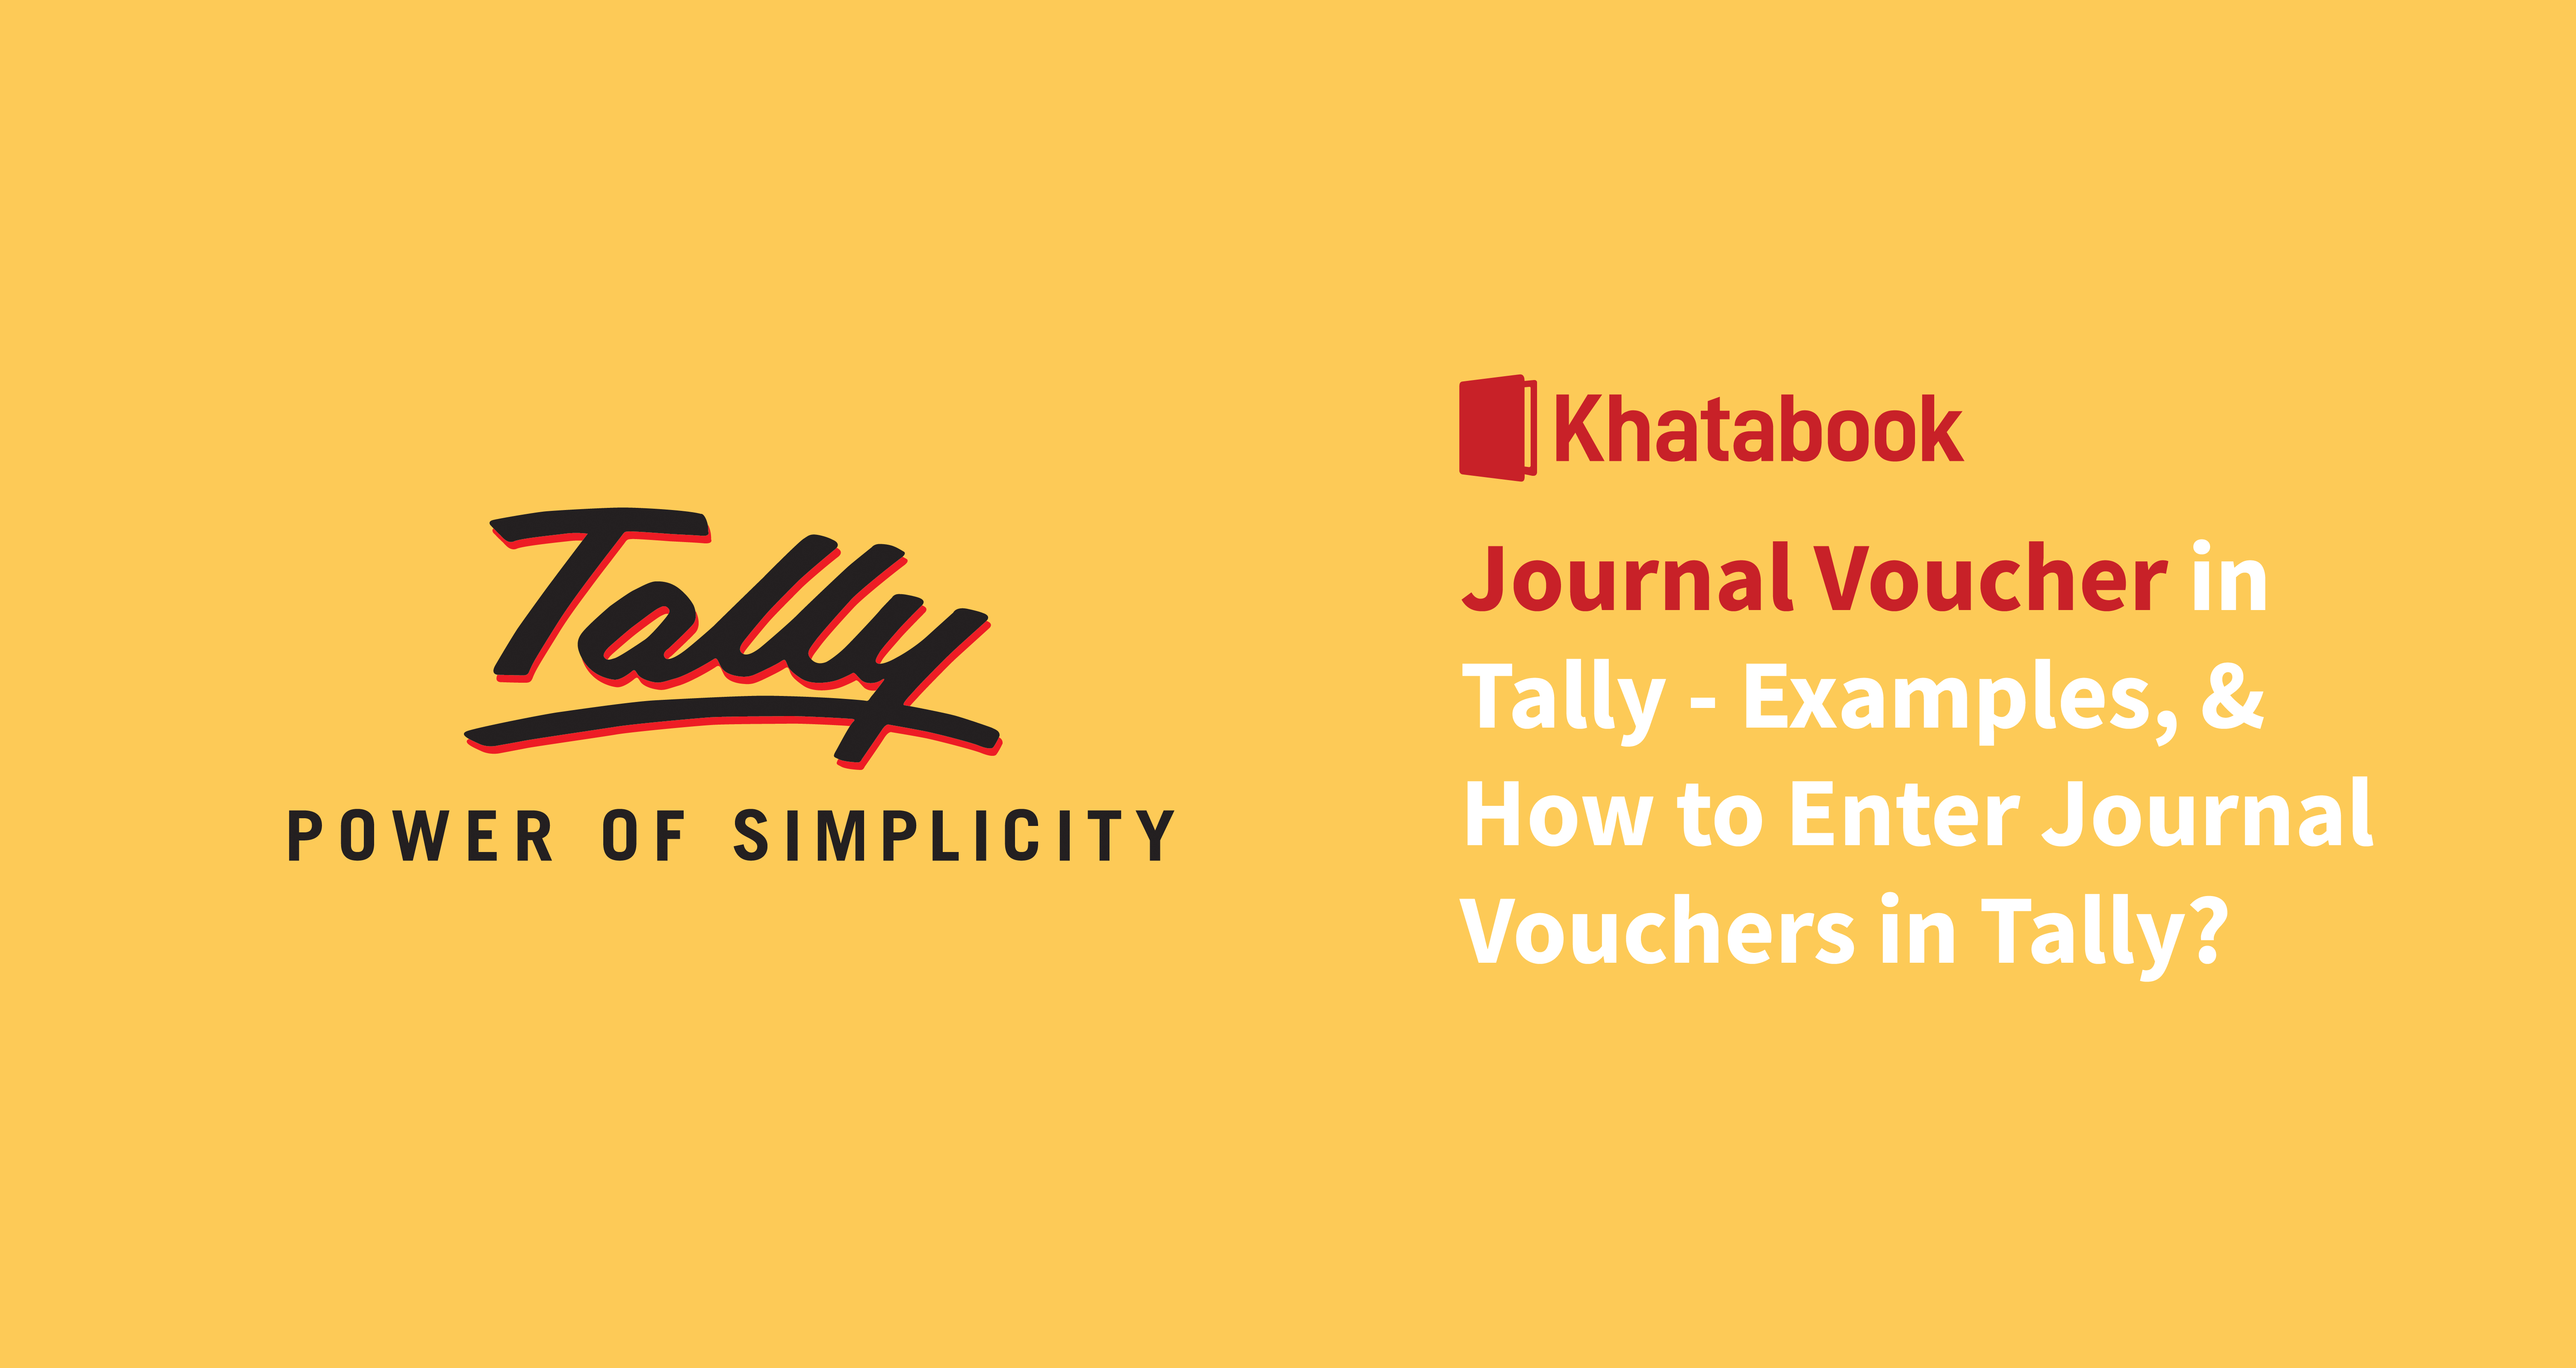 Journal Voucher in Tally - Examples, & How to Enter Journal Vouchers in Tally